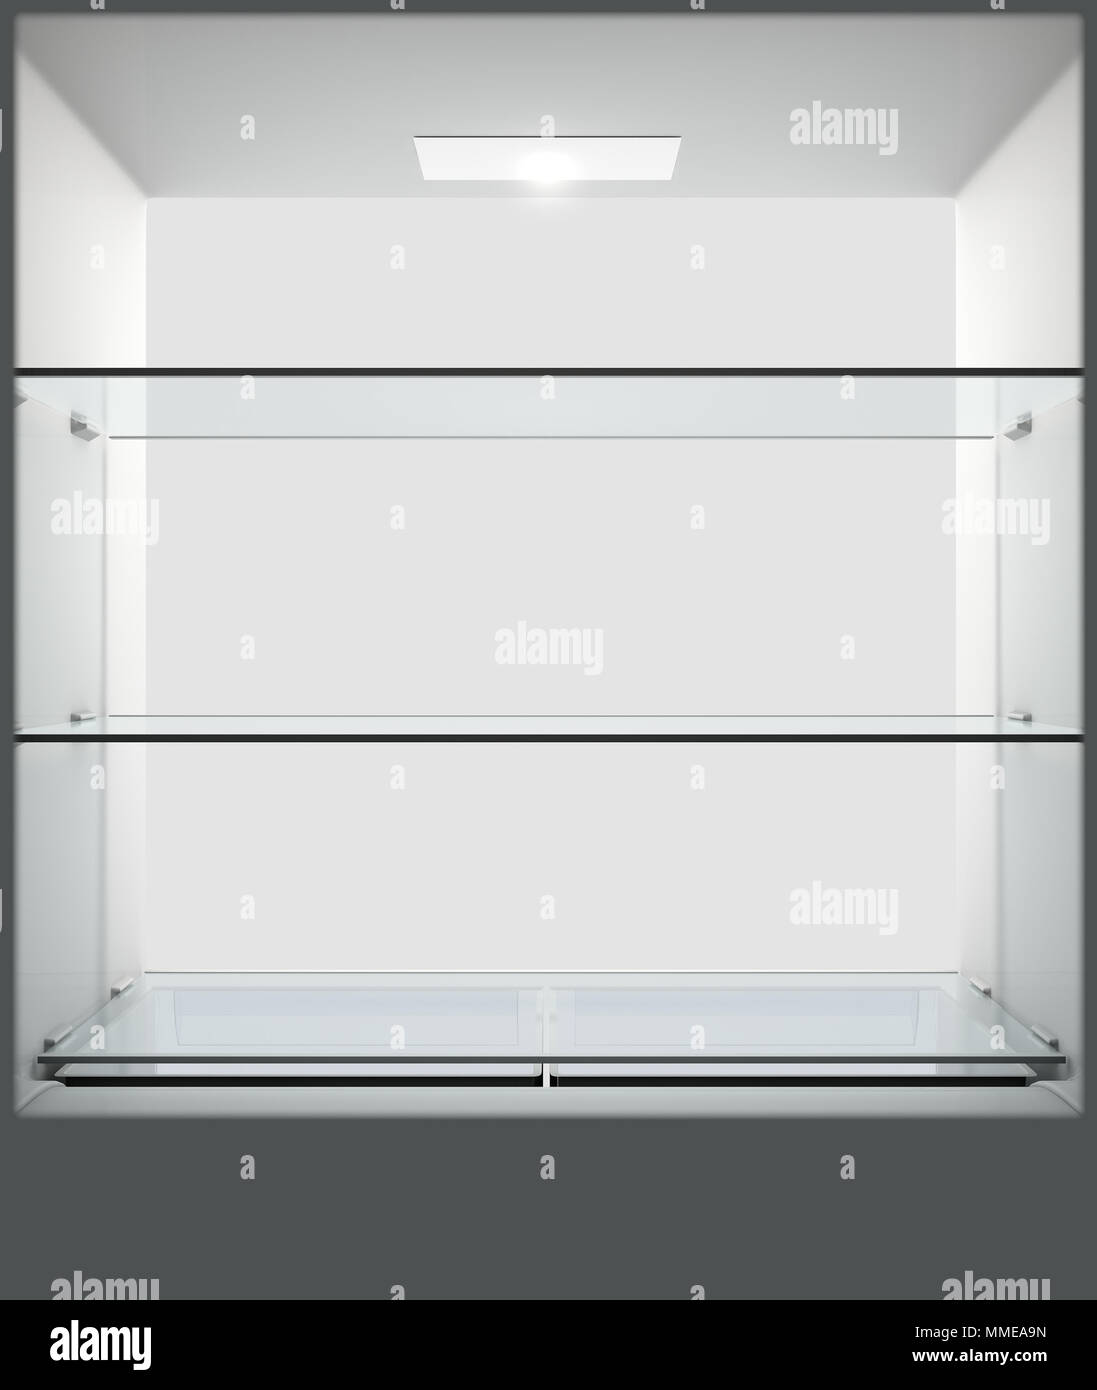 A view from inside an empty household fridge or freezer looking out the open door - 3D render - Stock Image